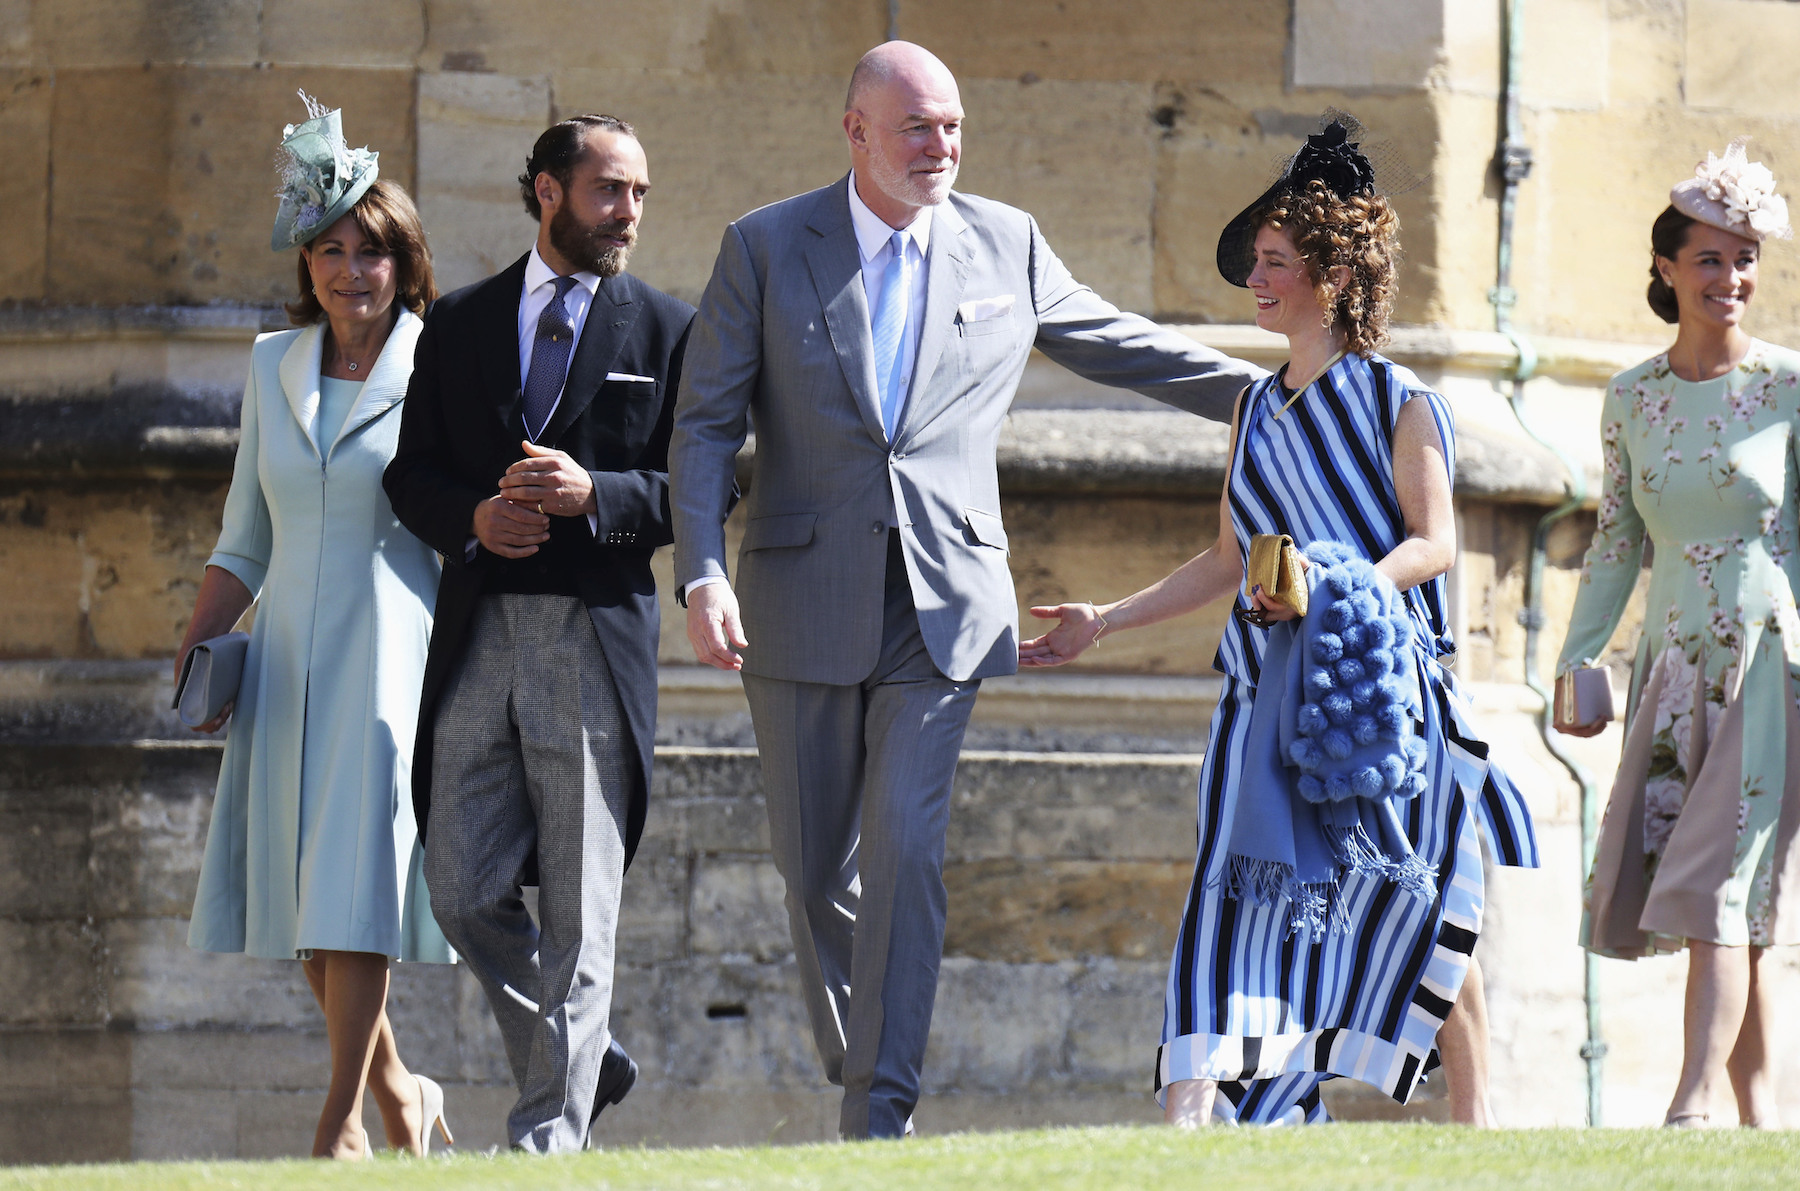 <div class='meta'><div class='origin-logo' data-origin='AP'></div><span class='caption-text' data-credit='Chris Jackson/Getty Images'>Carole, James and Pippa Middleton arrive at the wedding of Prince Harry to Ms. Meghan Markle at St George's Chapel, Windsor Castle.</span></div>